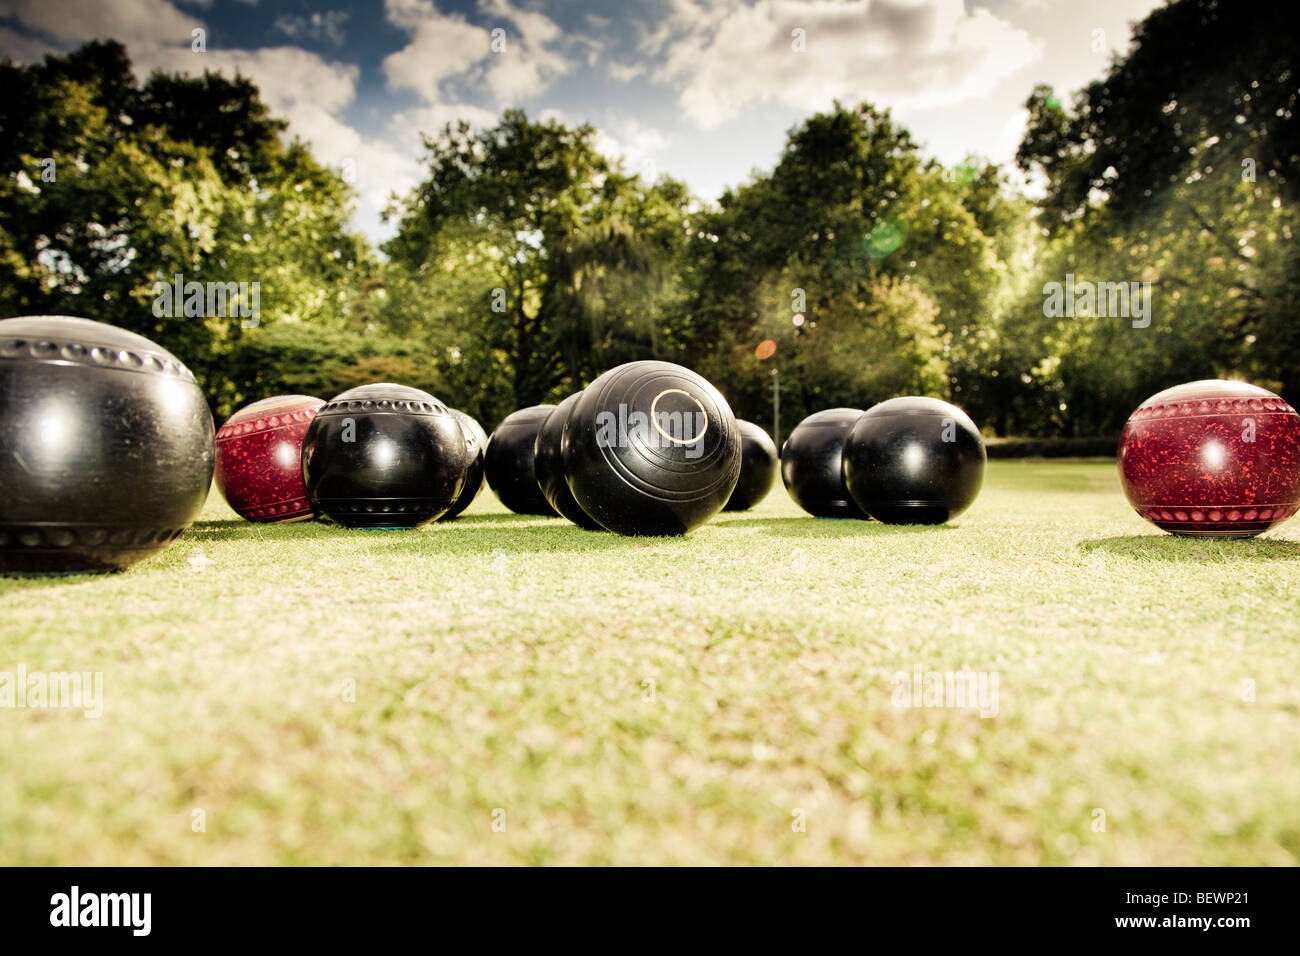 Low angle of a group of lawn bowls woods at Southwark Park Club - Stock Image